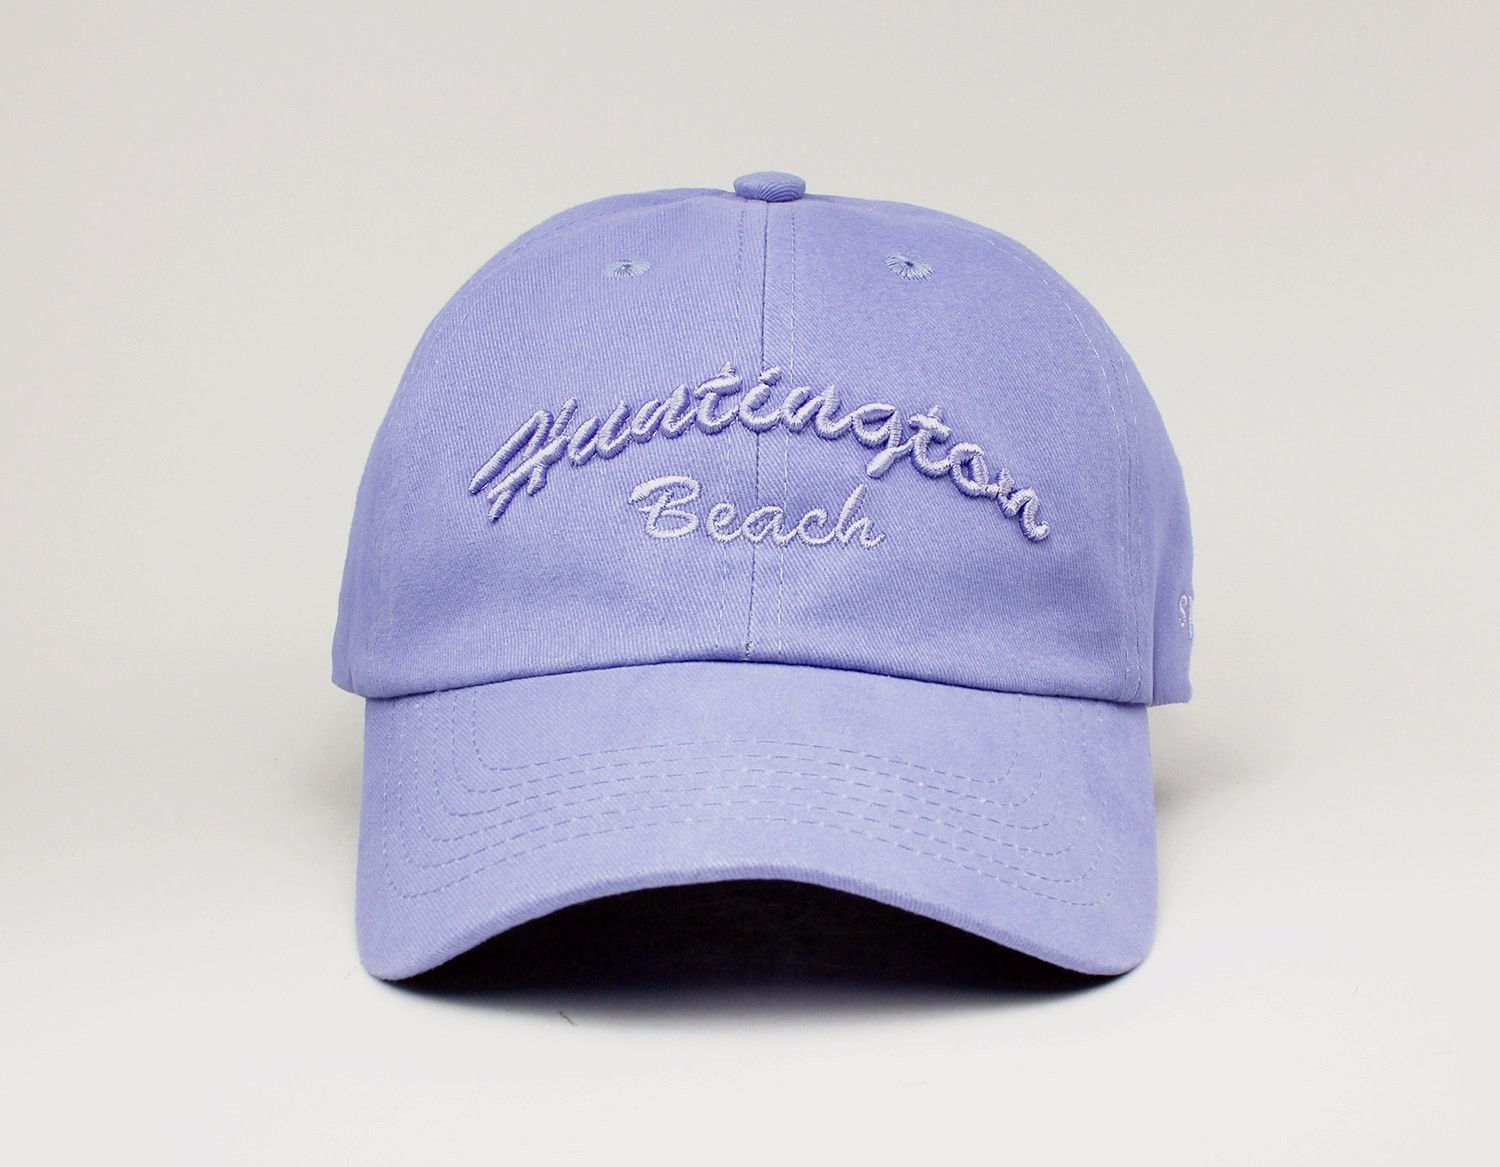 Cowabunga Purple Ponytail Baseball Cap Zipper In The Back With Images Baseball Cap Cap Baseball